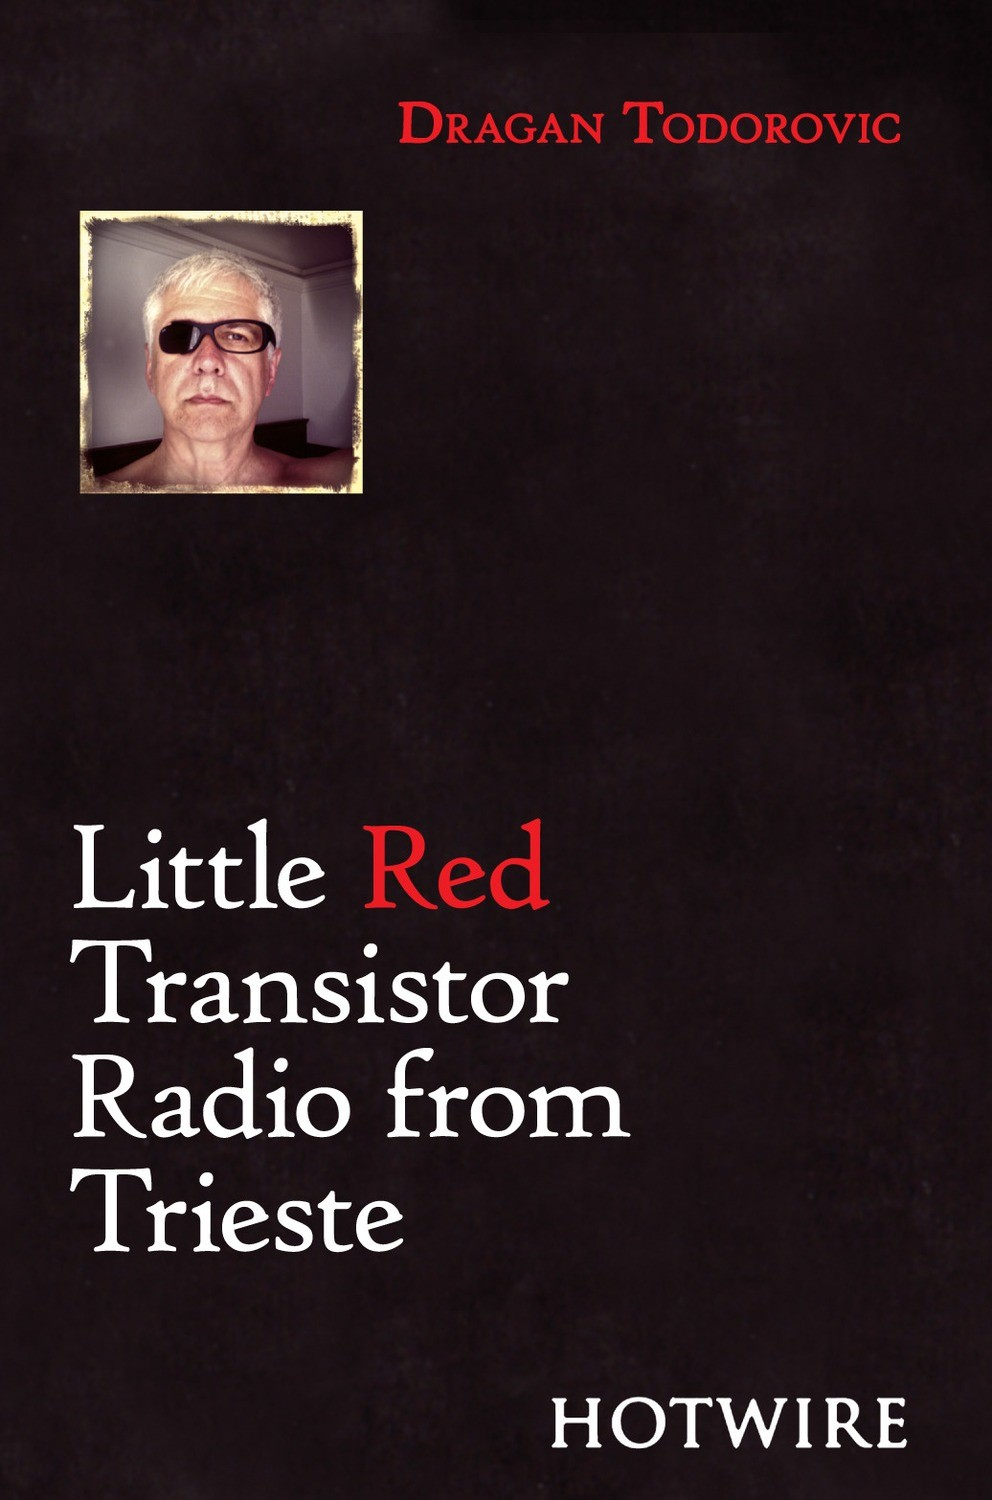 Little Red Transistor Radio from Trieste - Dragan Todorovic